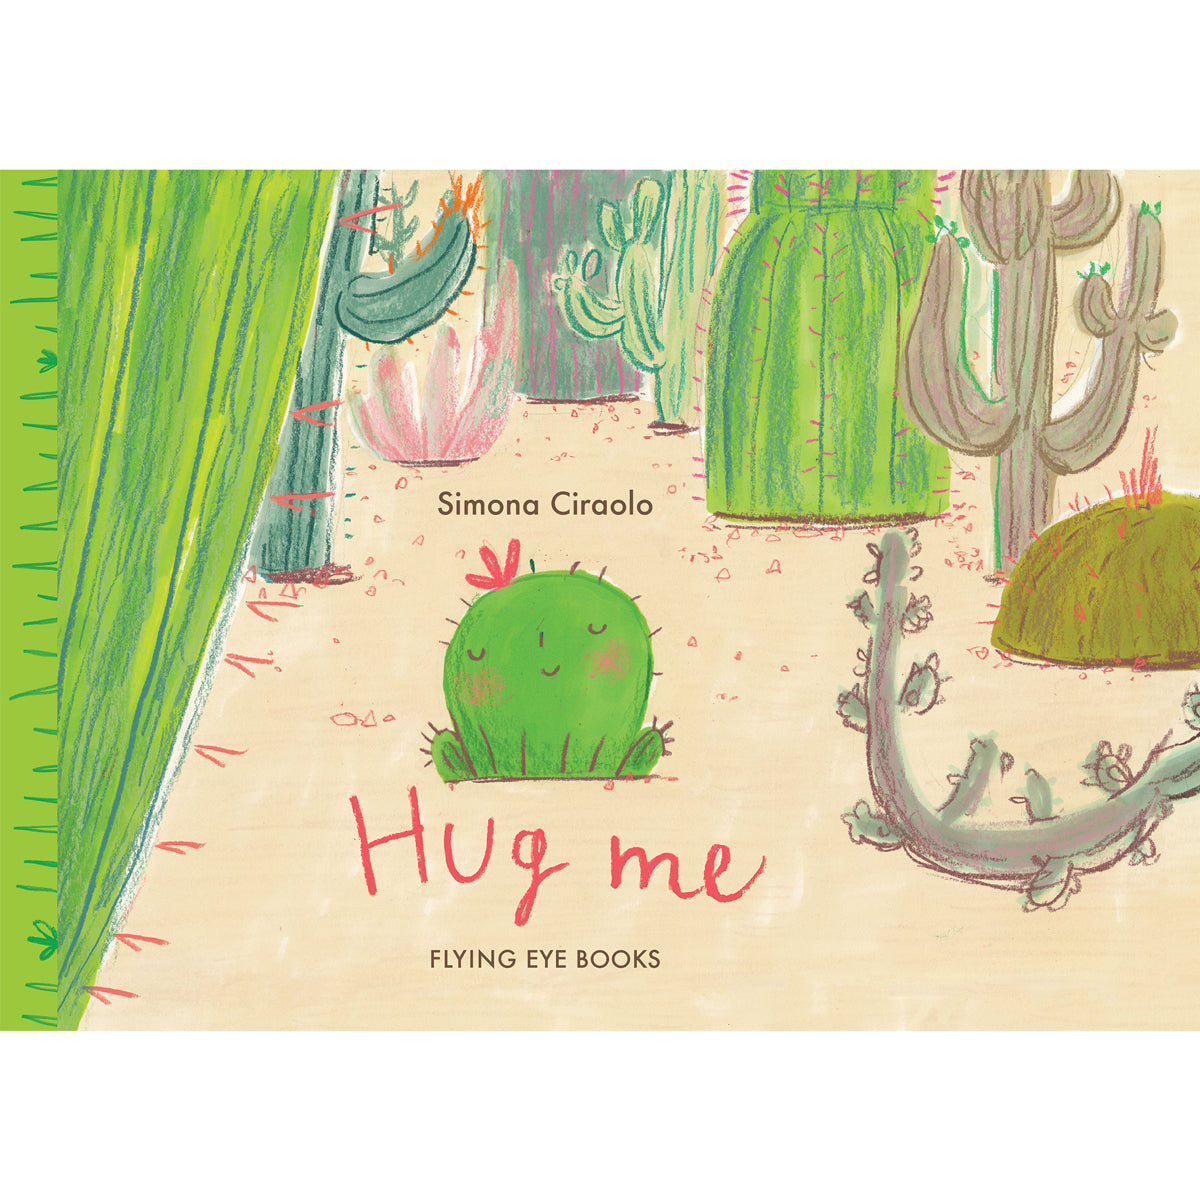 Hug Me by Simona Ciraolo flying eye books